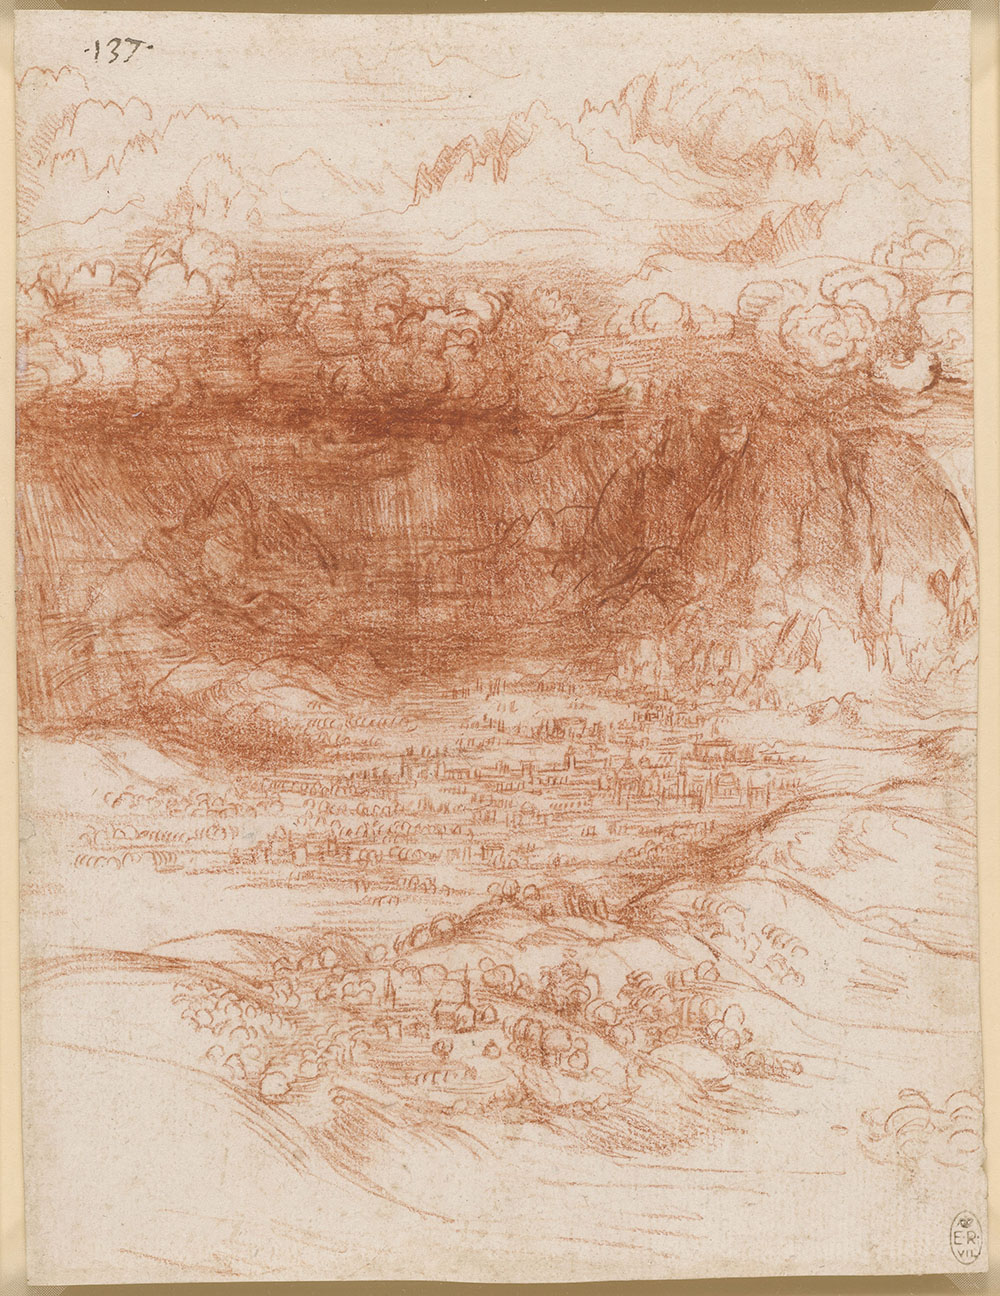 A storm over a valley, c1506-10  In 1506 Leonardo returned to Milan. He journeyed into the nearby Alps several times, recording his observations on one ascent: 'This may be seen, as I saw it, by anyone going up Monte Rosa, a peak of the Alps which divide France from Italy. Snow seldom falls there, but only hail in the summer, and in the middle of July I found it very considerable; and I saw the sky above me quite dark, and the sun as it fell on the mountain was far brighter than in the plain below, because less atmosphere lay between the mountain and the sun.' This drawing depicts a storm in the foothills of the Alps, with distant peaks sunlit above the stormclouds. It was most probably drawn from memory rather than on the spot, for the tiny city in the plain and the rolling foreground hills are rather stylised.  Bristol Museum & Art Gallery, £5, 10% off in shop with National Art Pass -